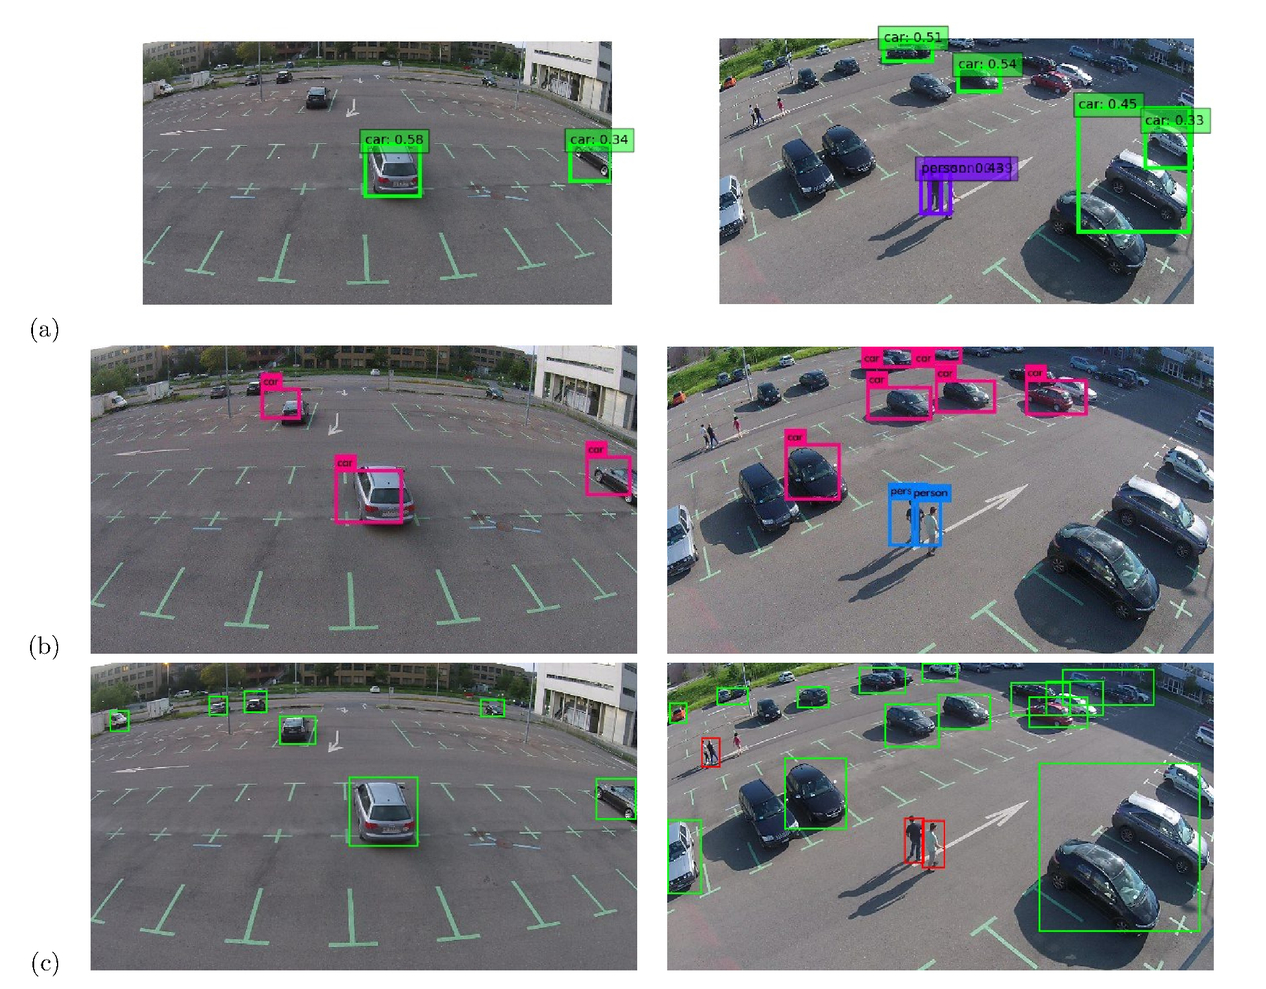 A real-time object detection framework for aerial imagery using deep